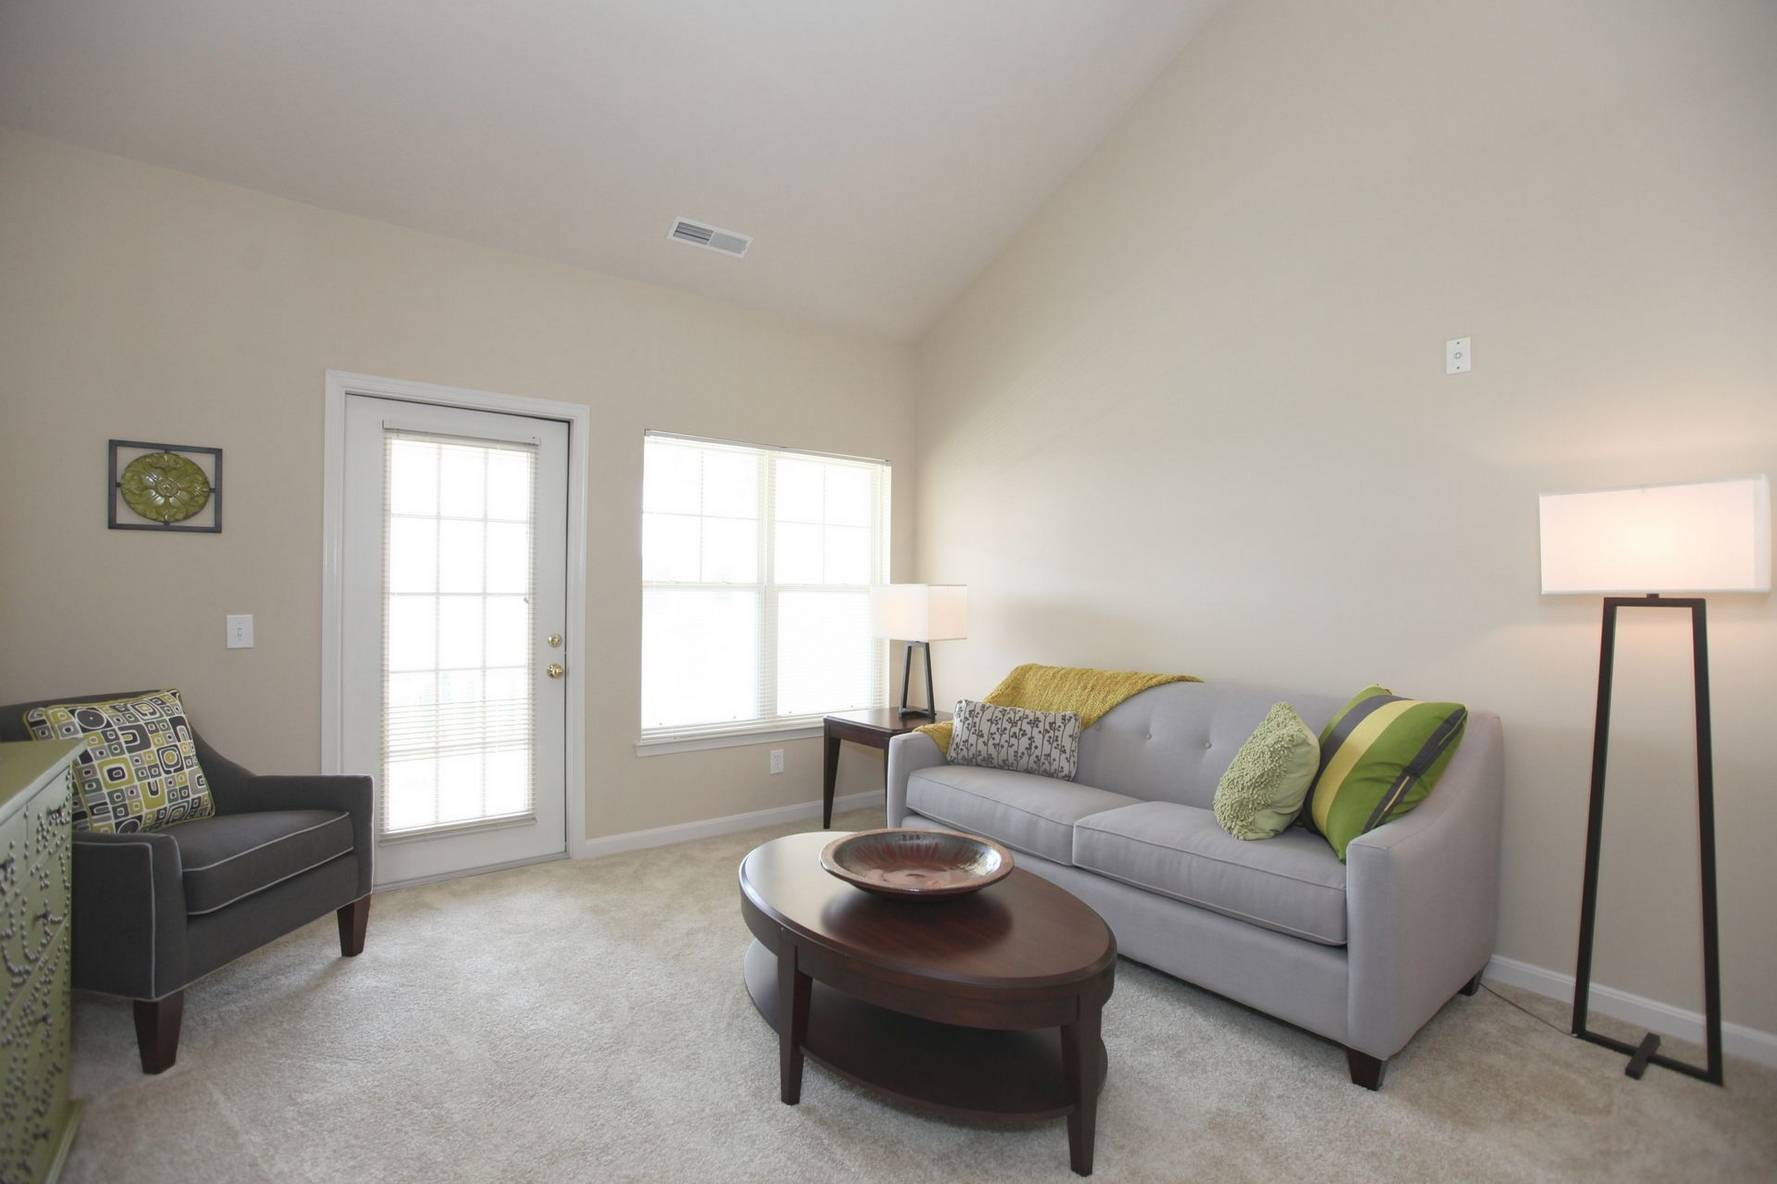 Apartment interior with light gray couch and carpet